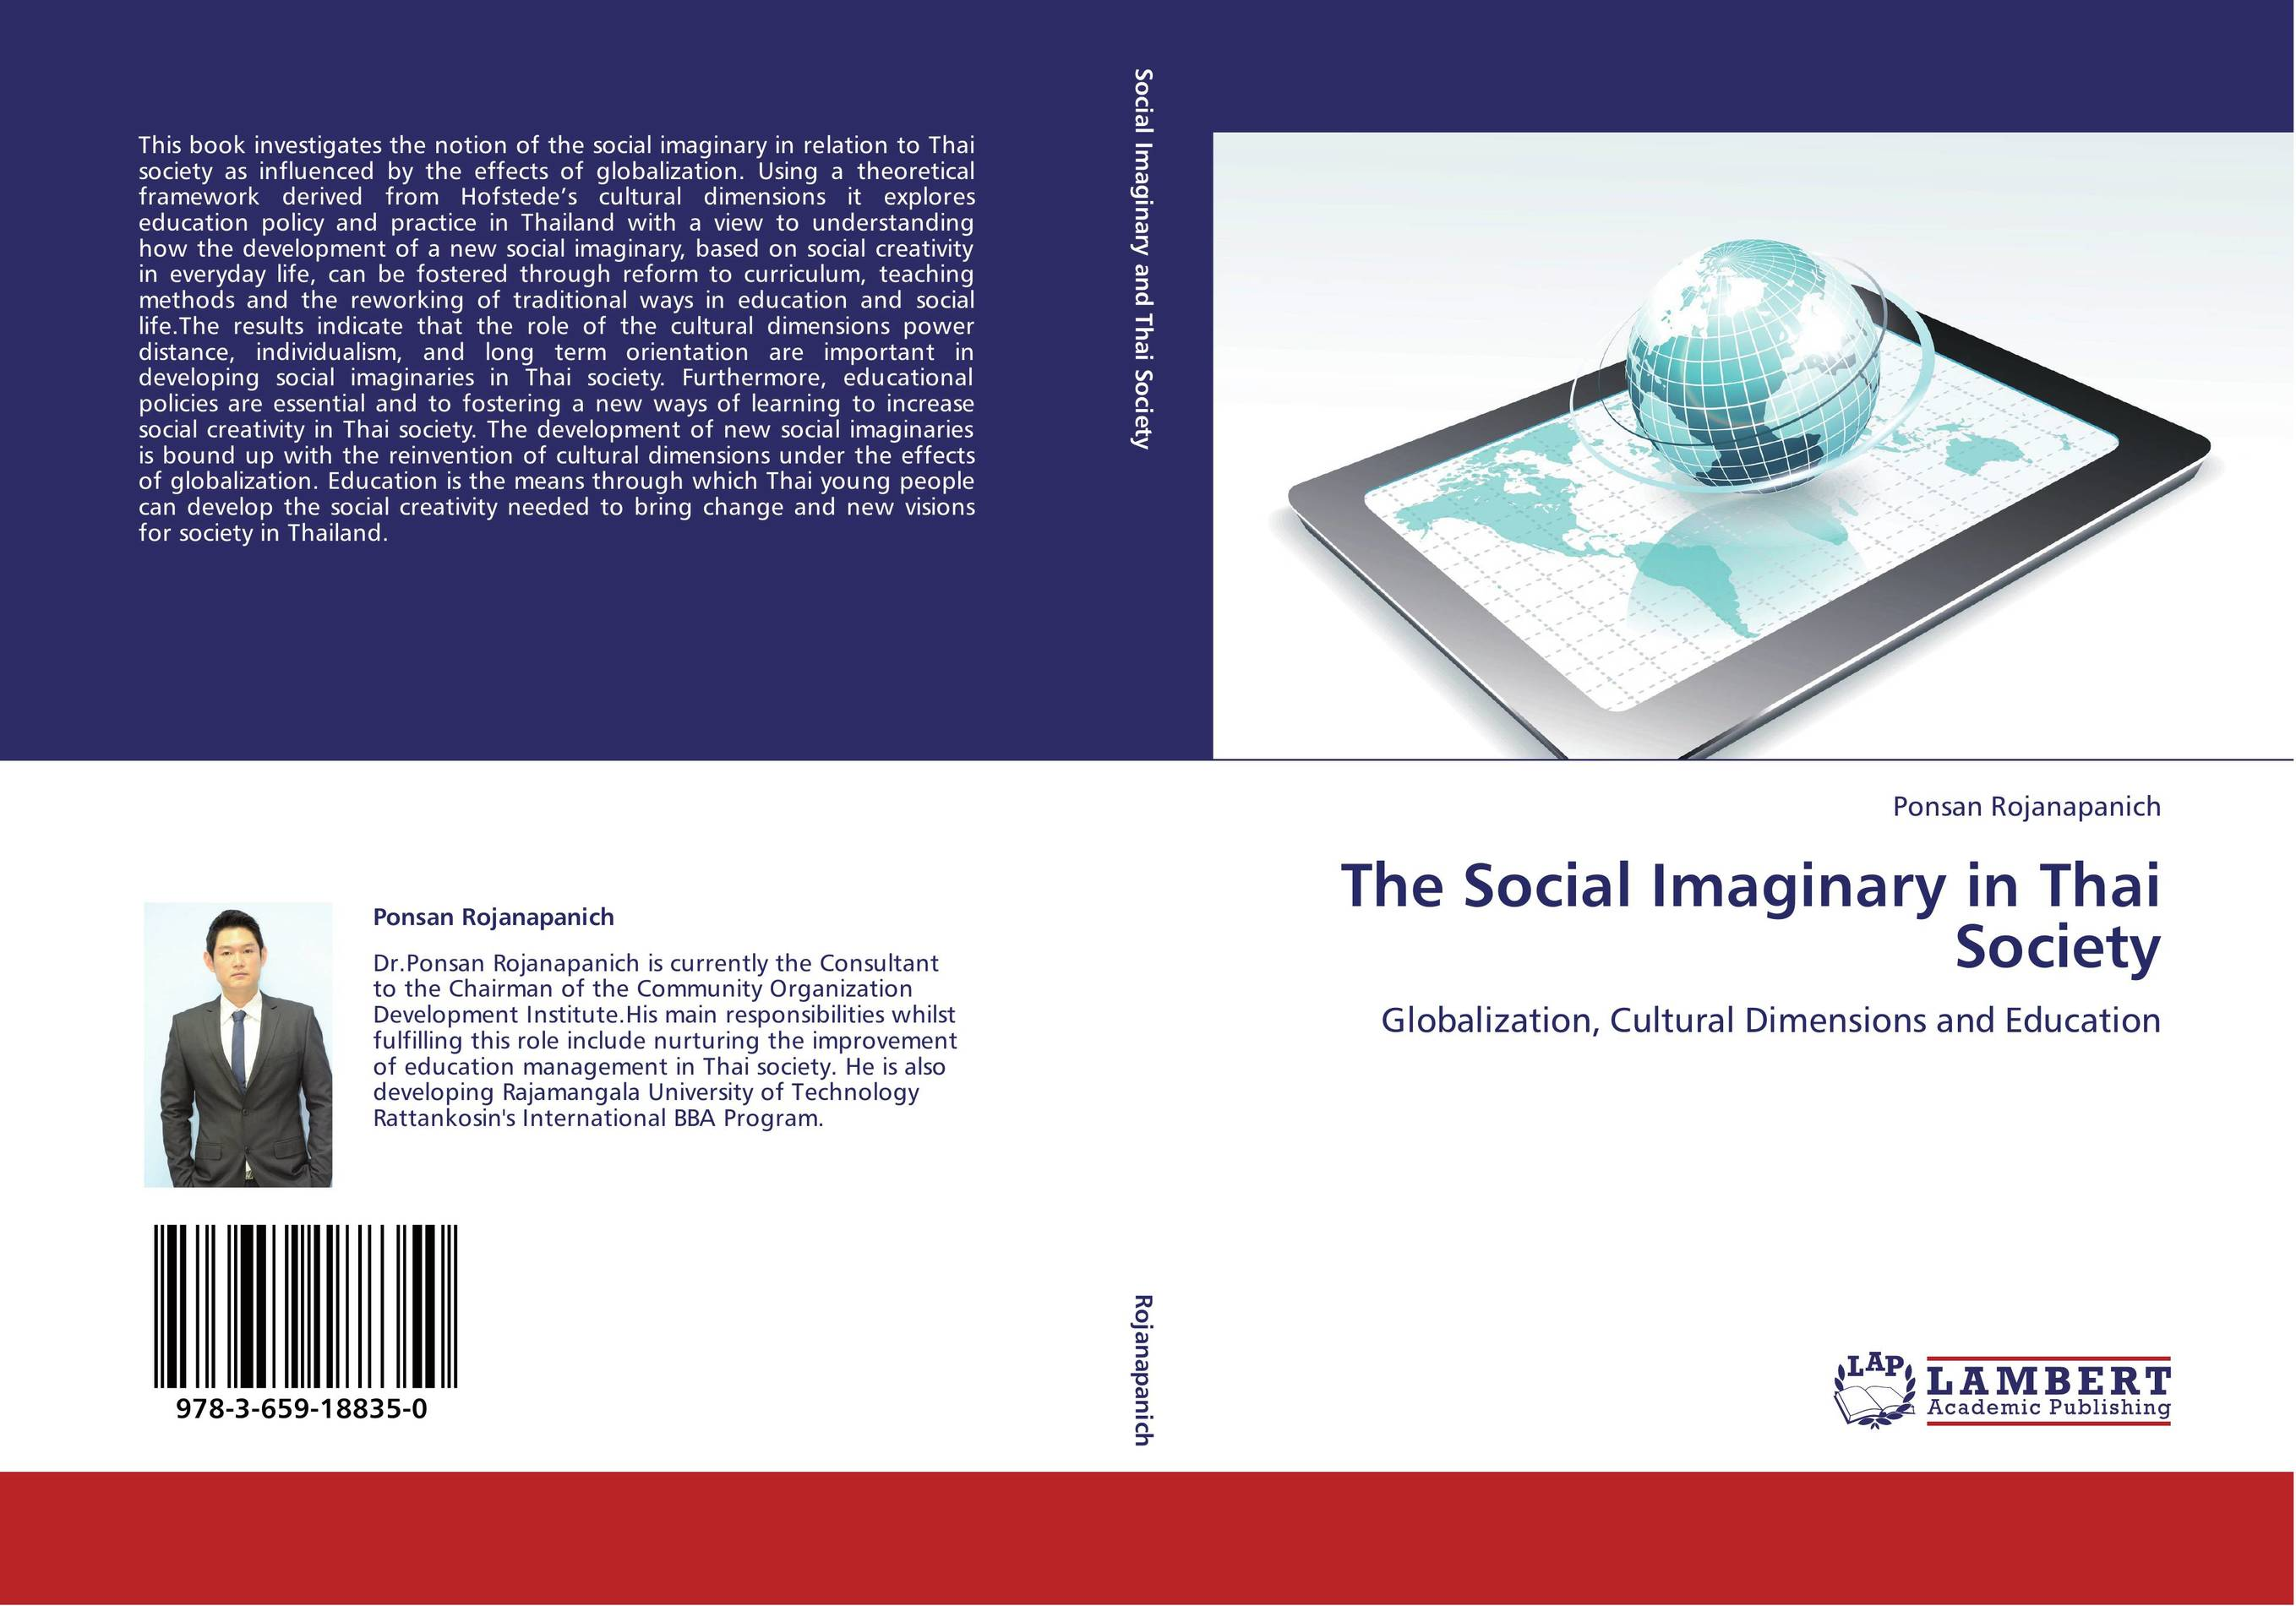 understanding how television influences the society and individuals The social aspects of television are influences this medium has had on society since its inception the belief that this impact has been dramatic has been largely unchallenged in media theory since its inception.